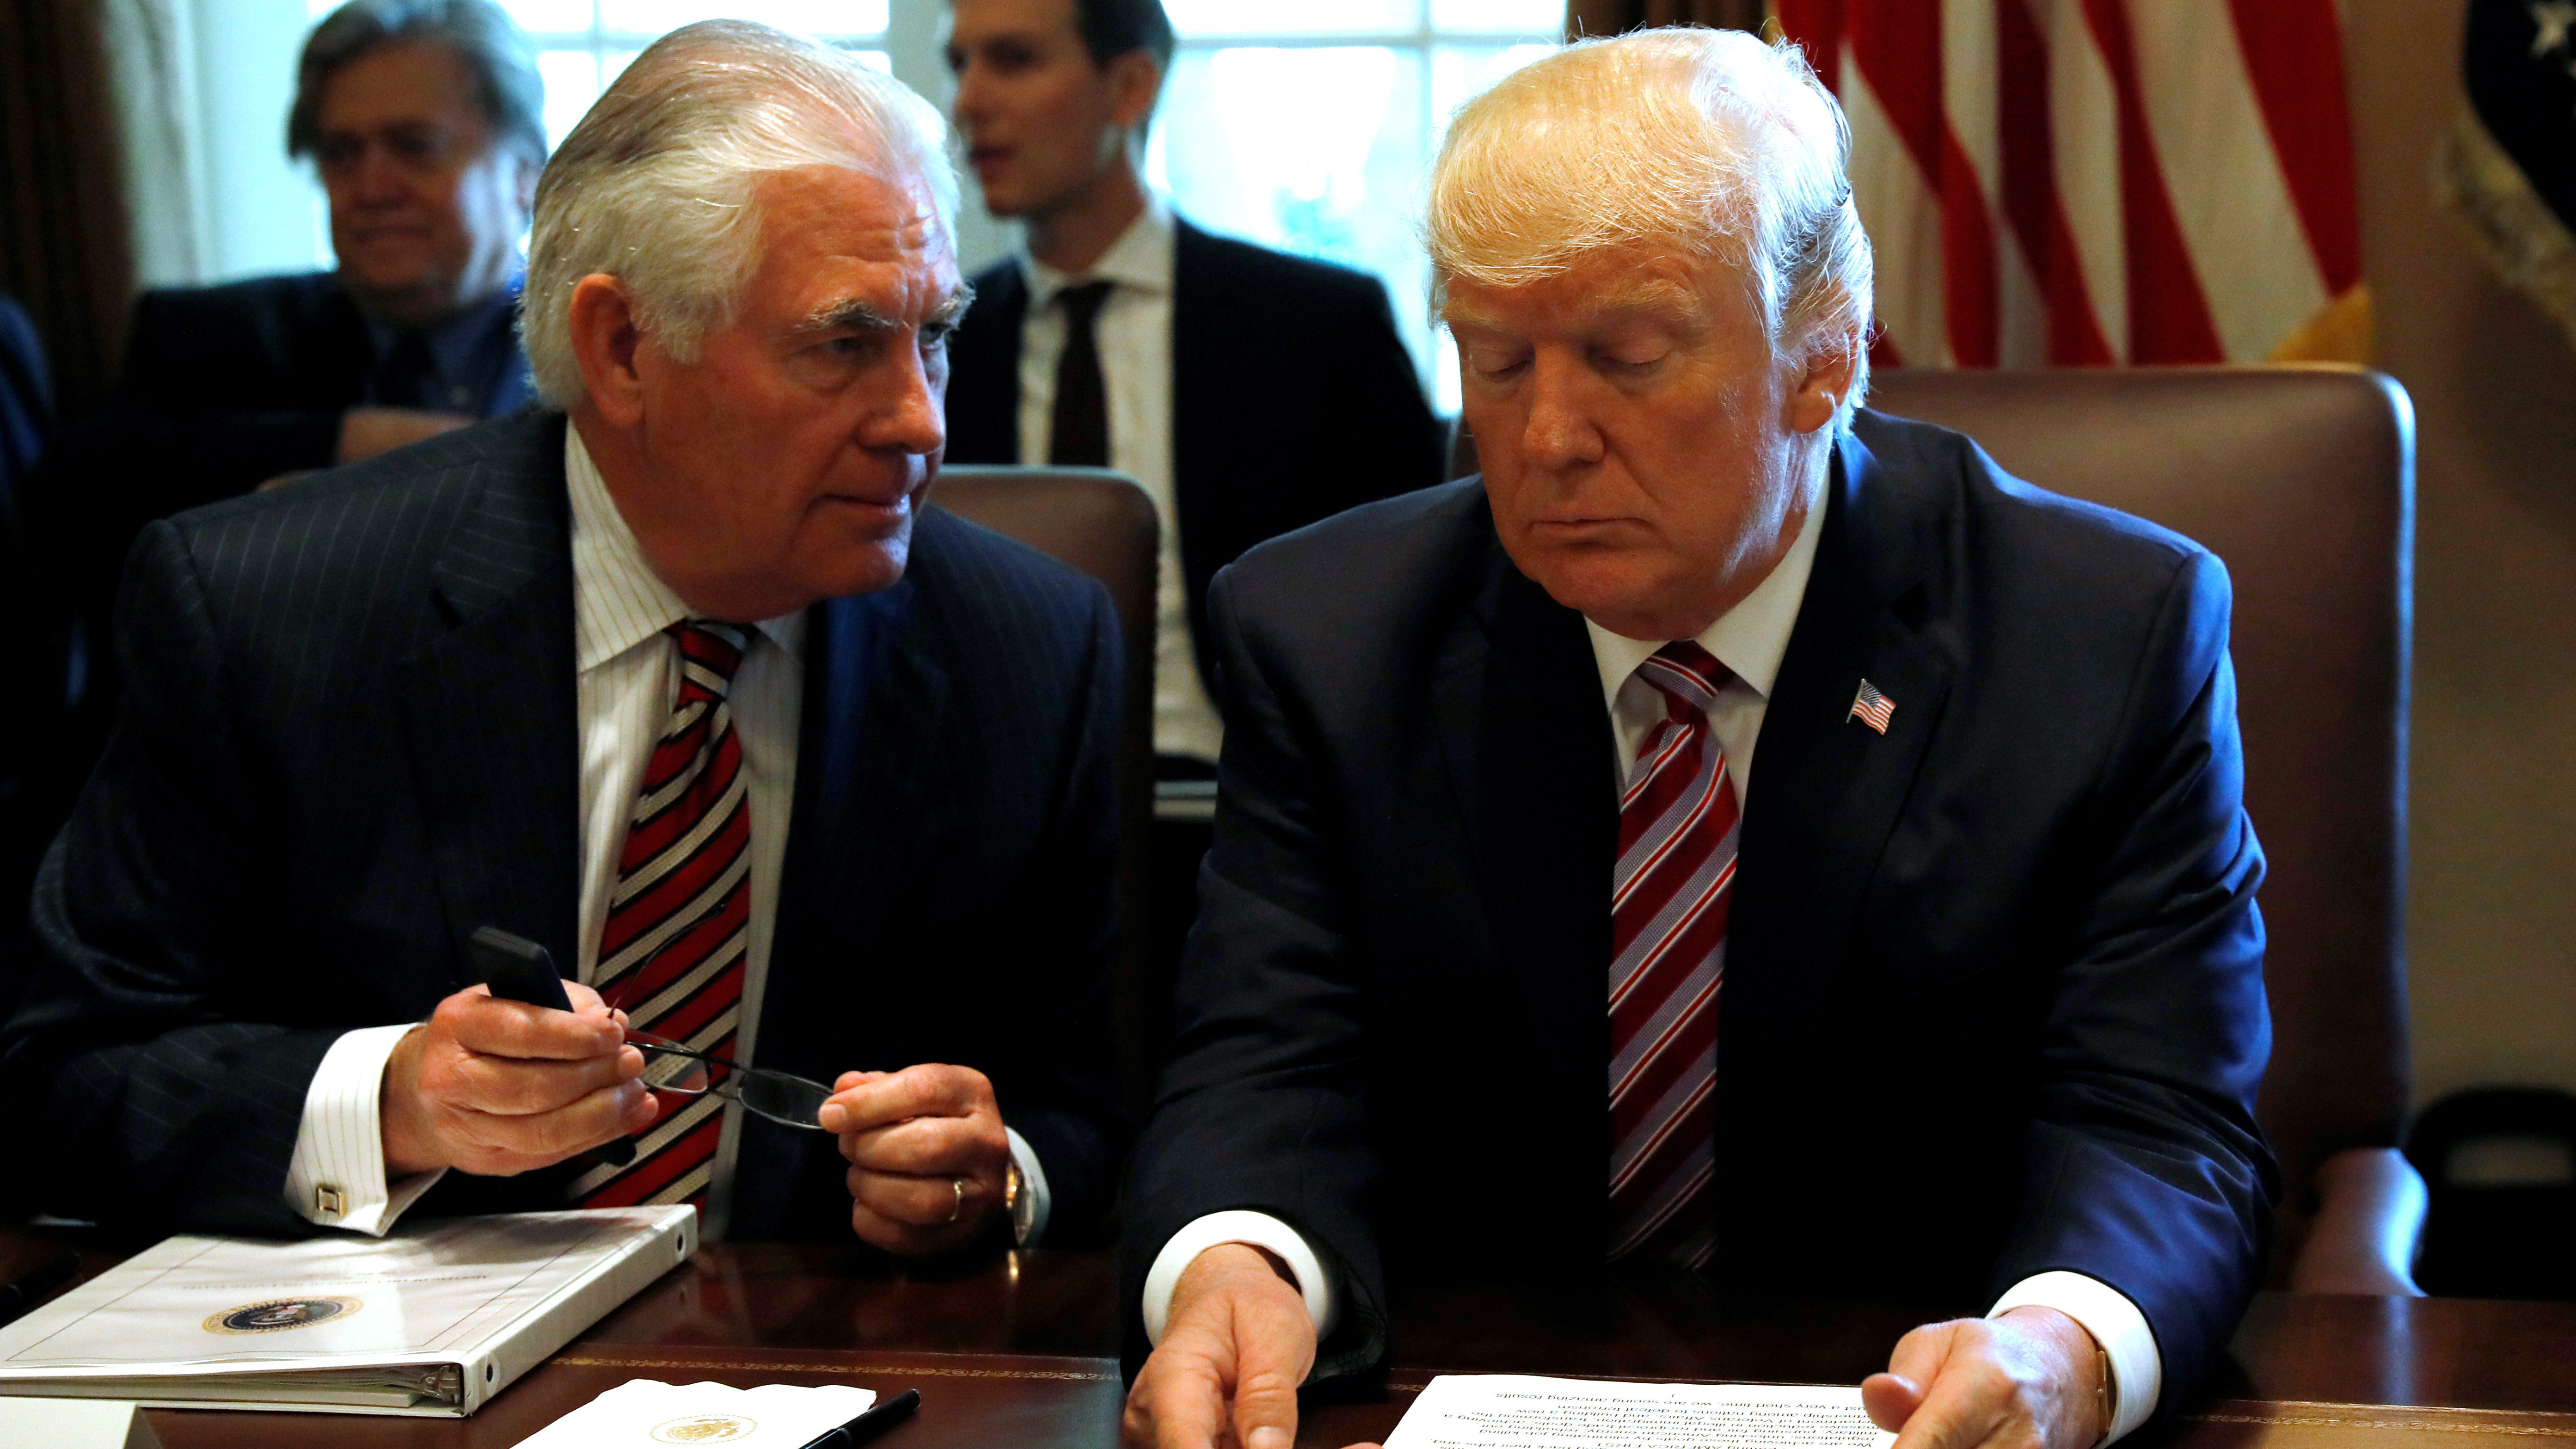 U.S. President Donald Trump talks with Secretary of State Rex Tillerson during a meeting with members of his Cabinet at the White House in Washington, U.S., June 12, 2017.  REUTERS/Kevin Lamarque - RTS16QQI